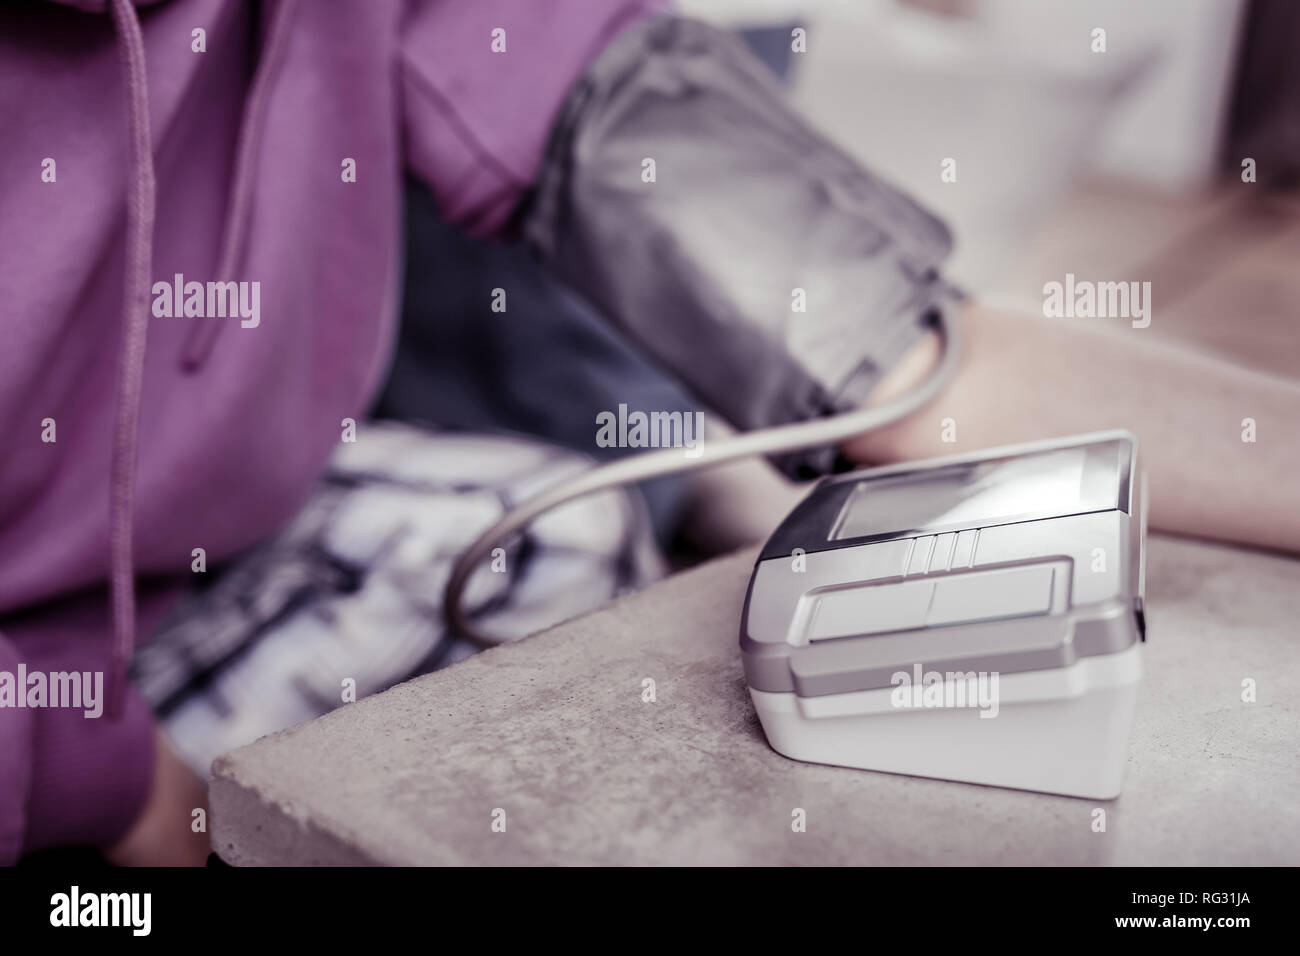 Focused photo on apparatus that standing on table - Stock Image